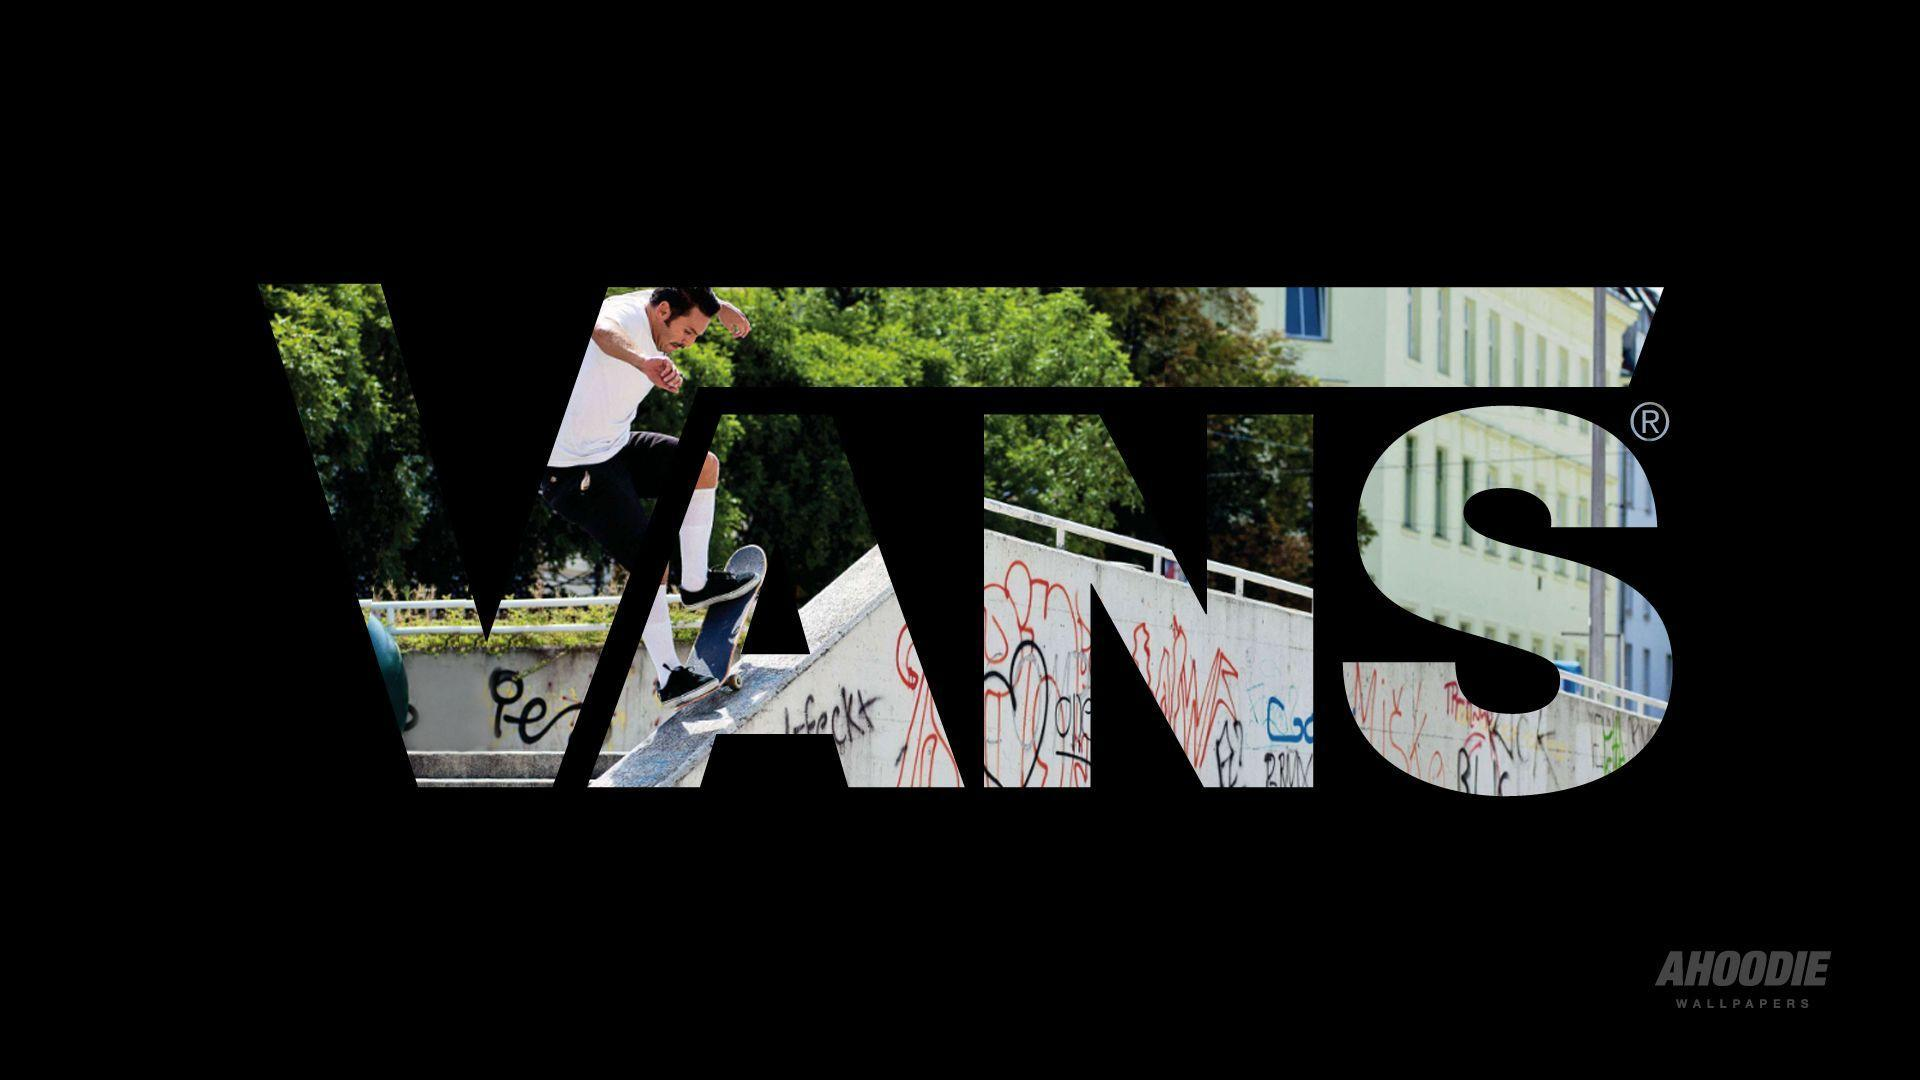 vans skateboard wallpaper 3d -#main